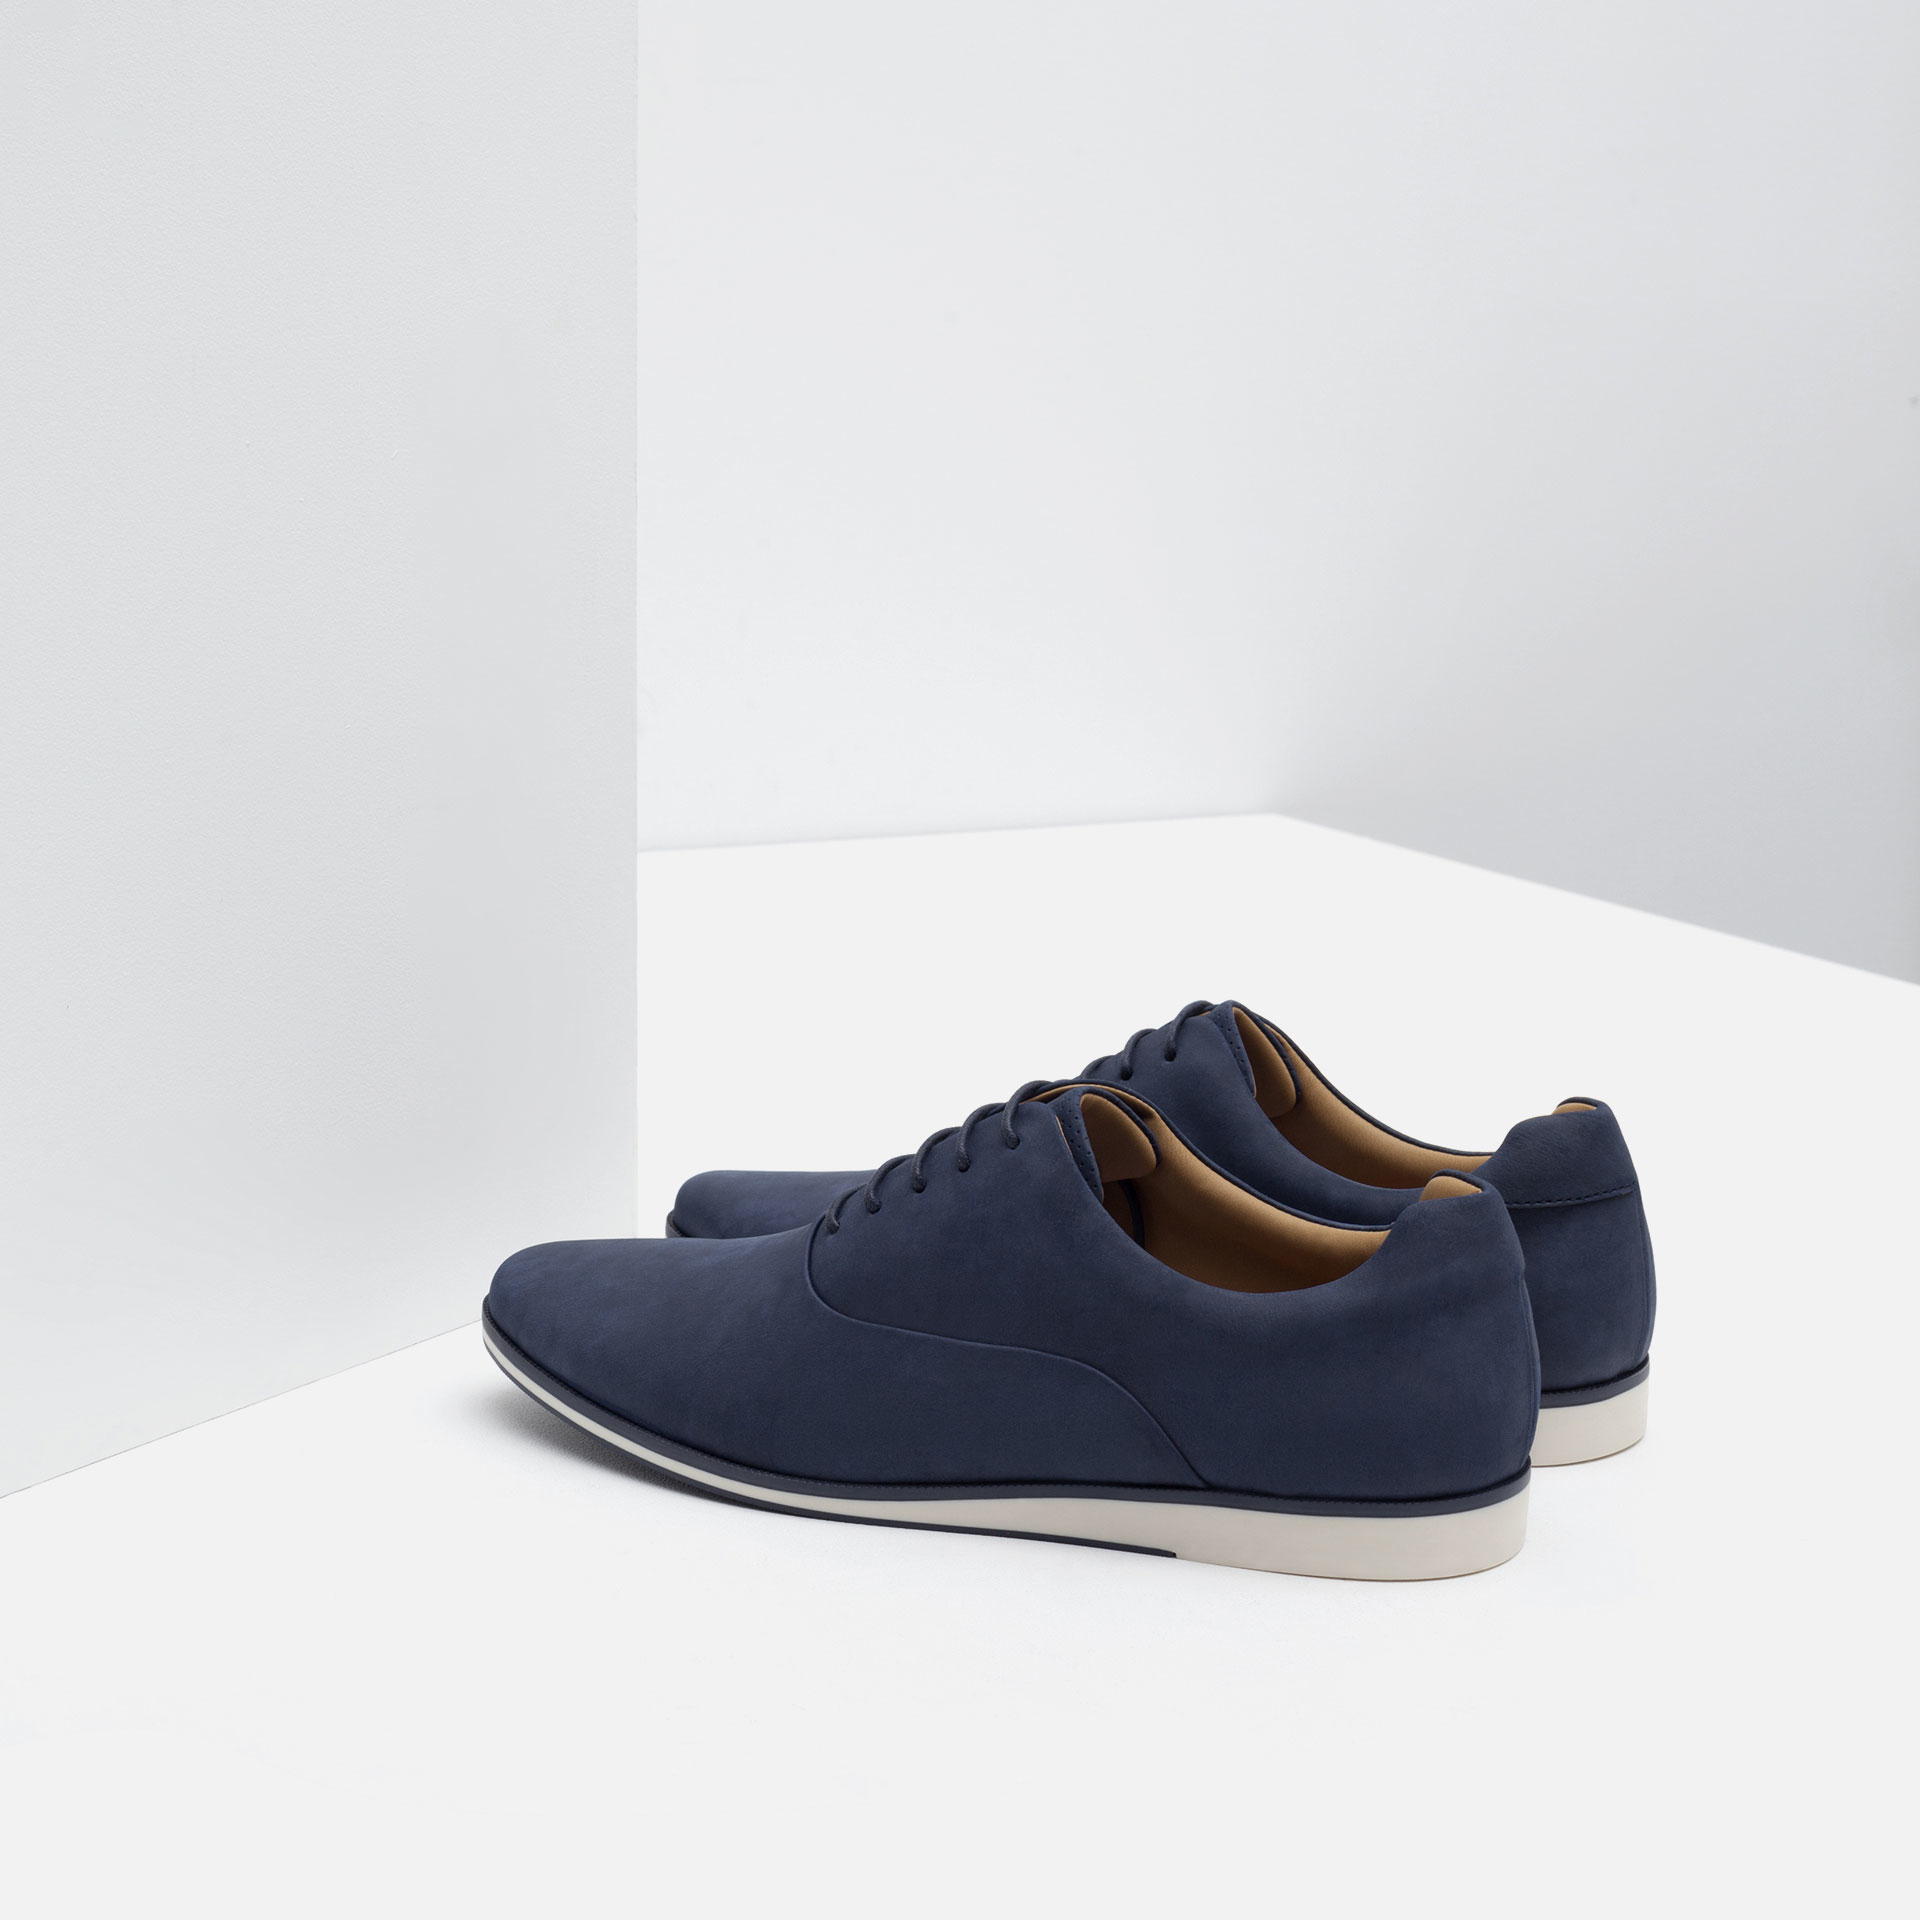 Zara Faux-Leather Oxford Shoes In Blue For Men | Lyst